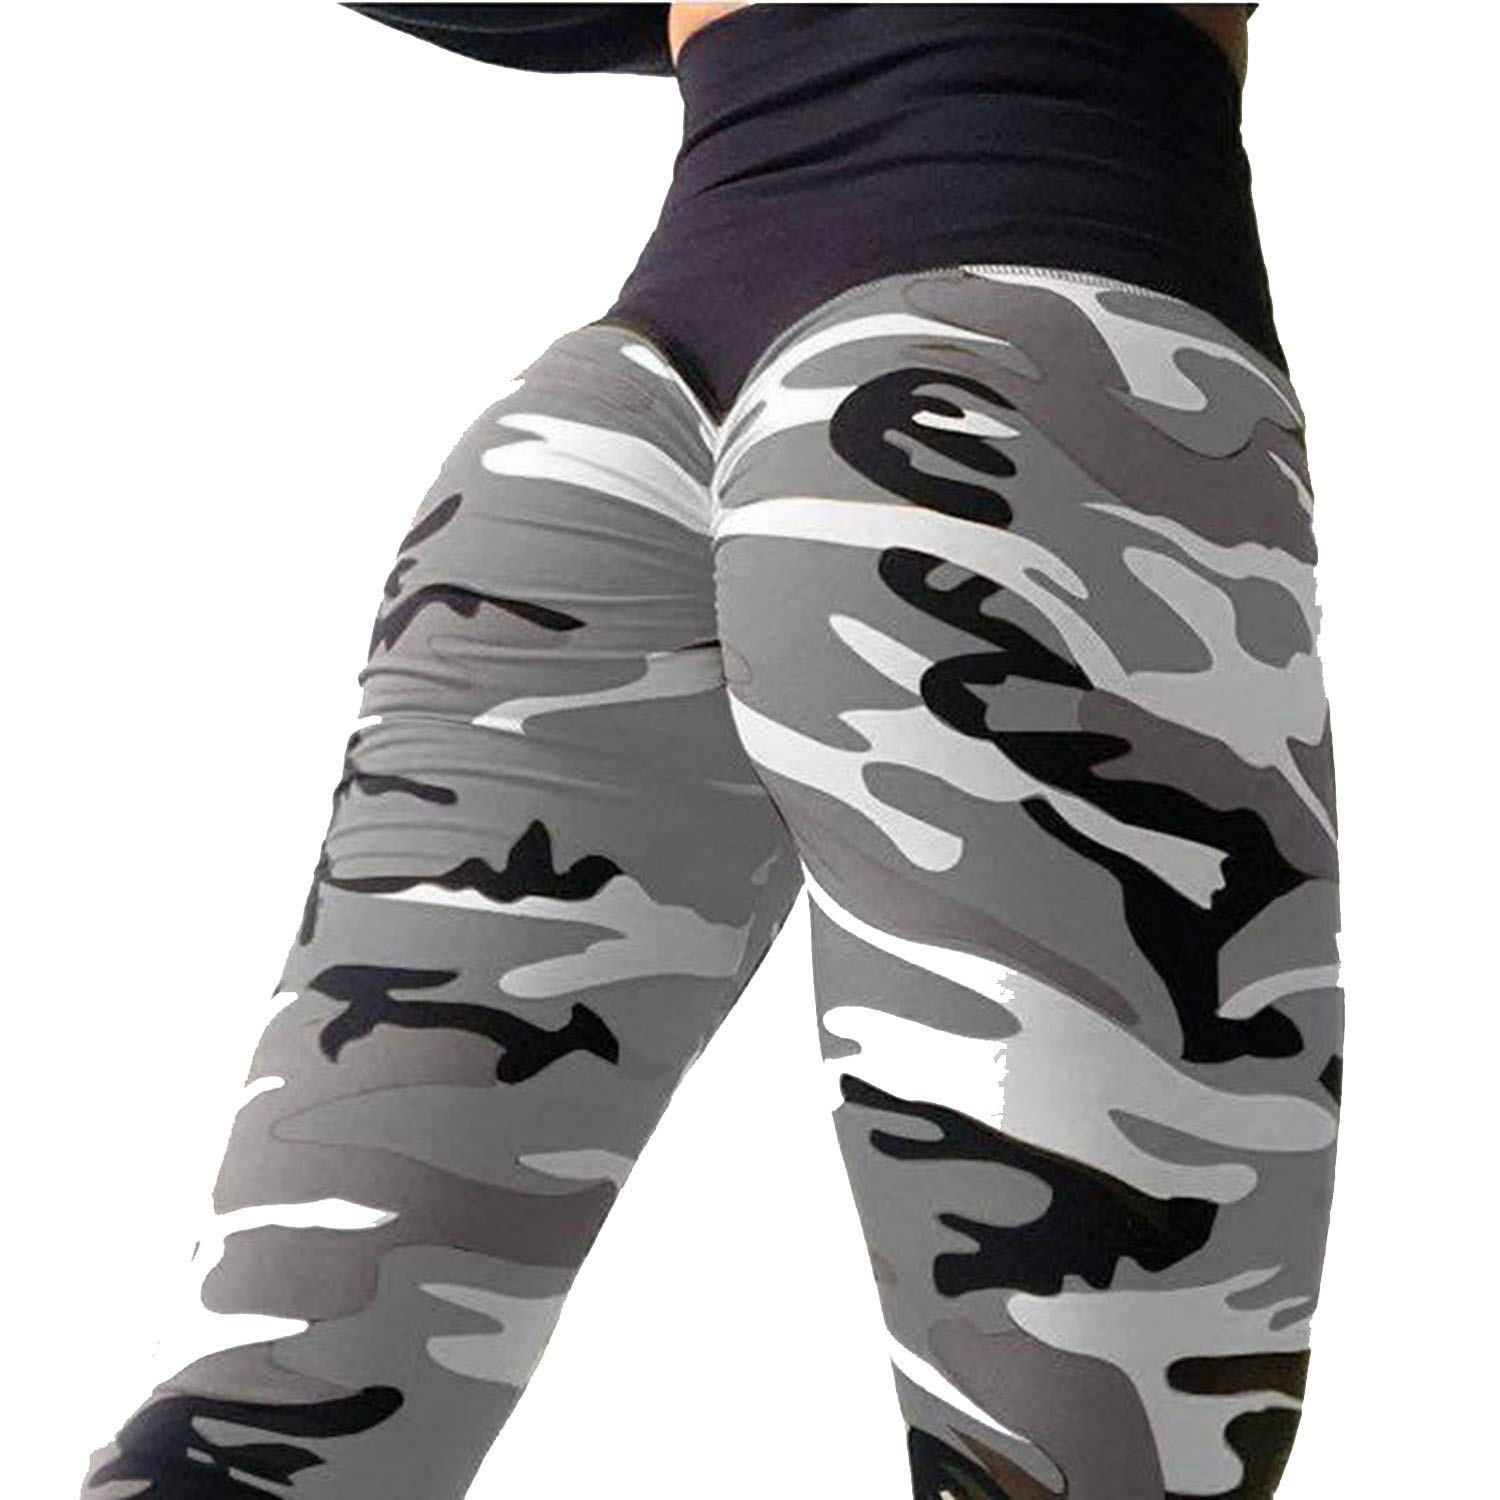 ff0c58db9d8 Cheap Wearing Only Leggings, find Wearing Only Leggings deals on ...